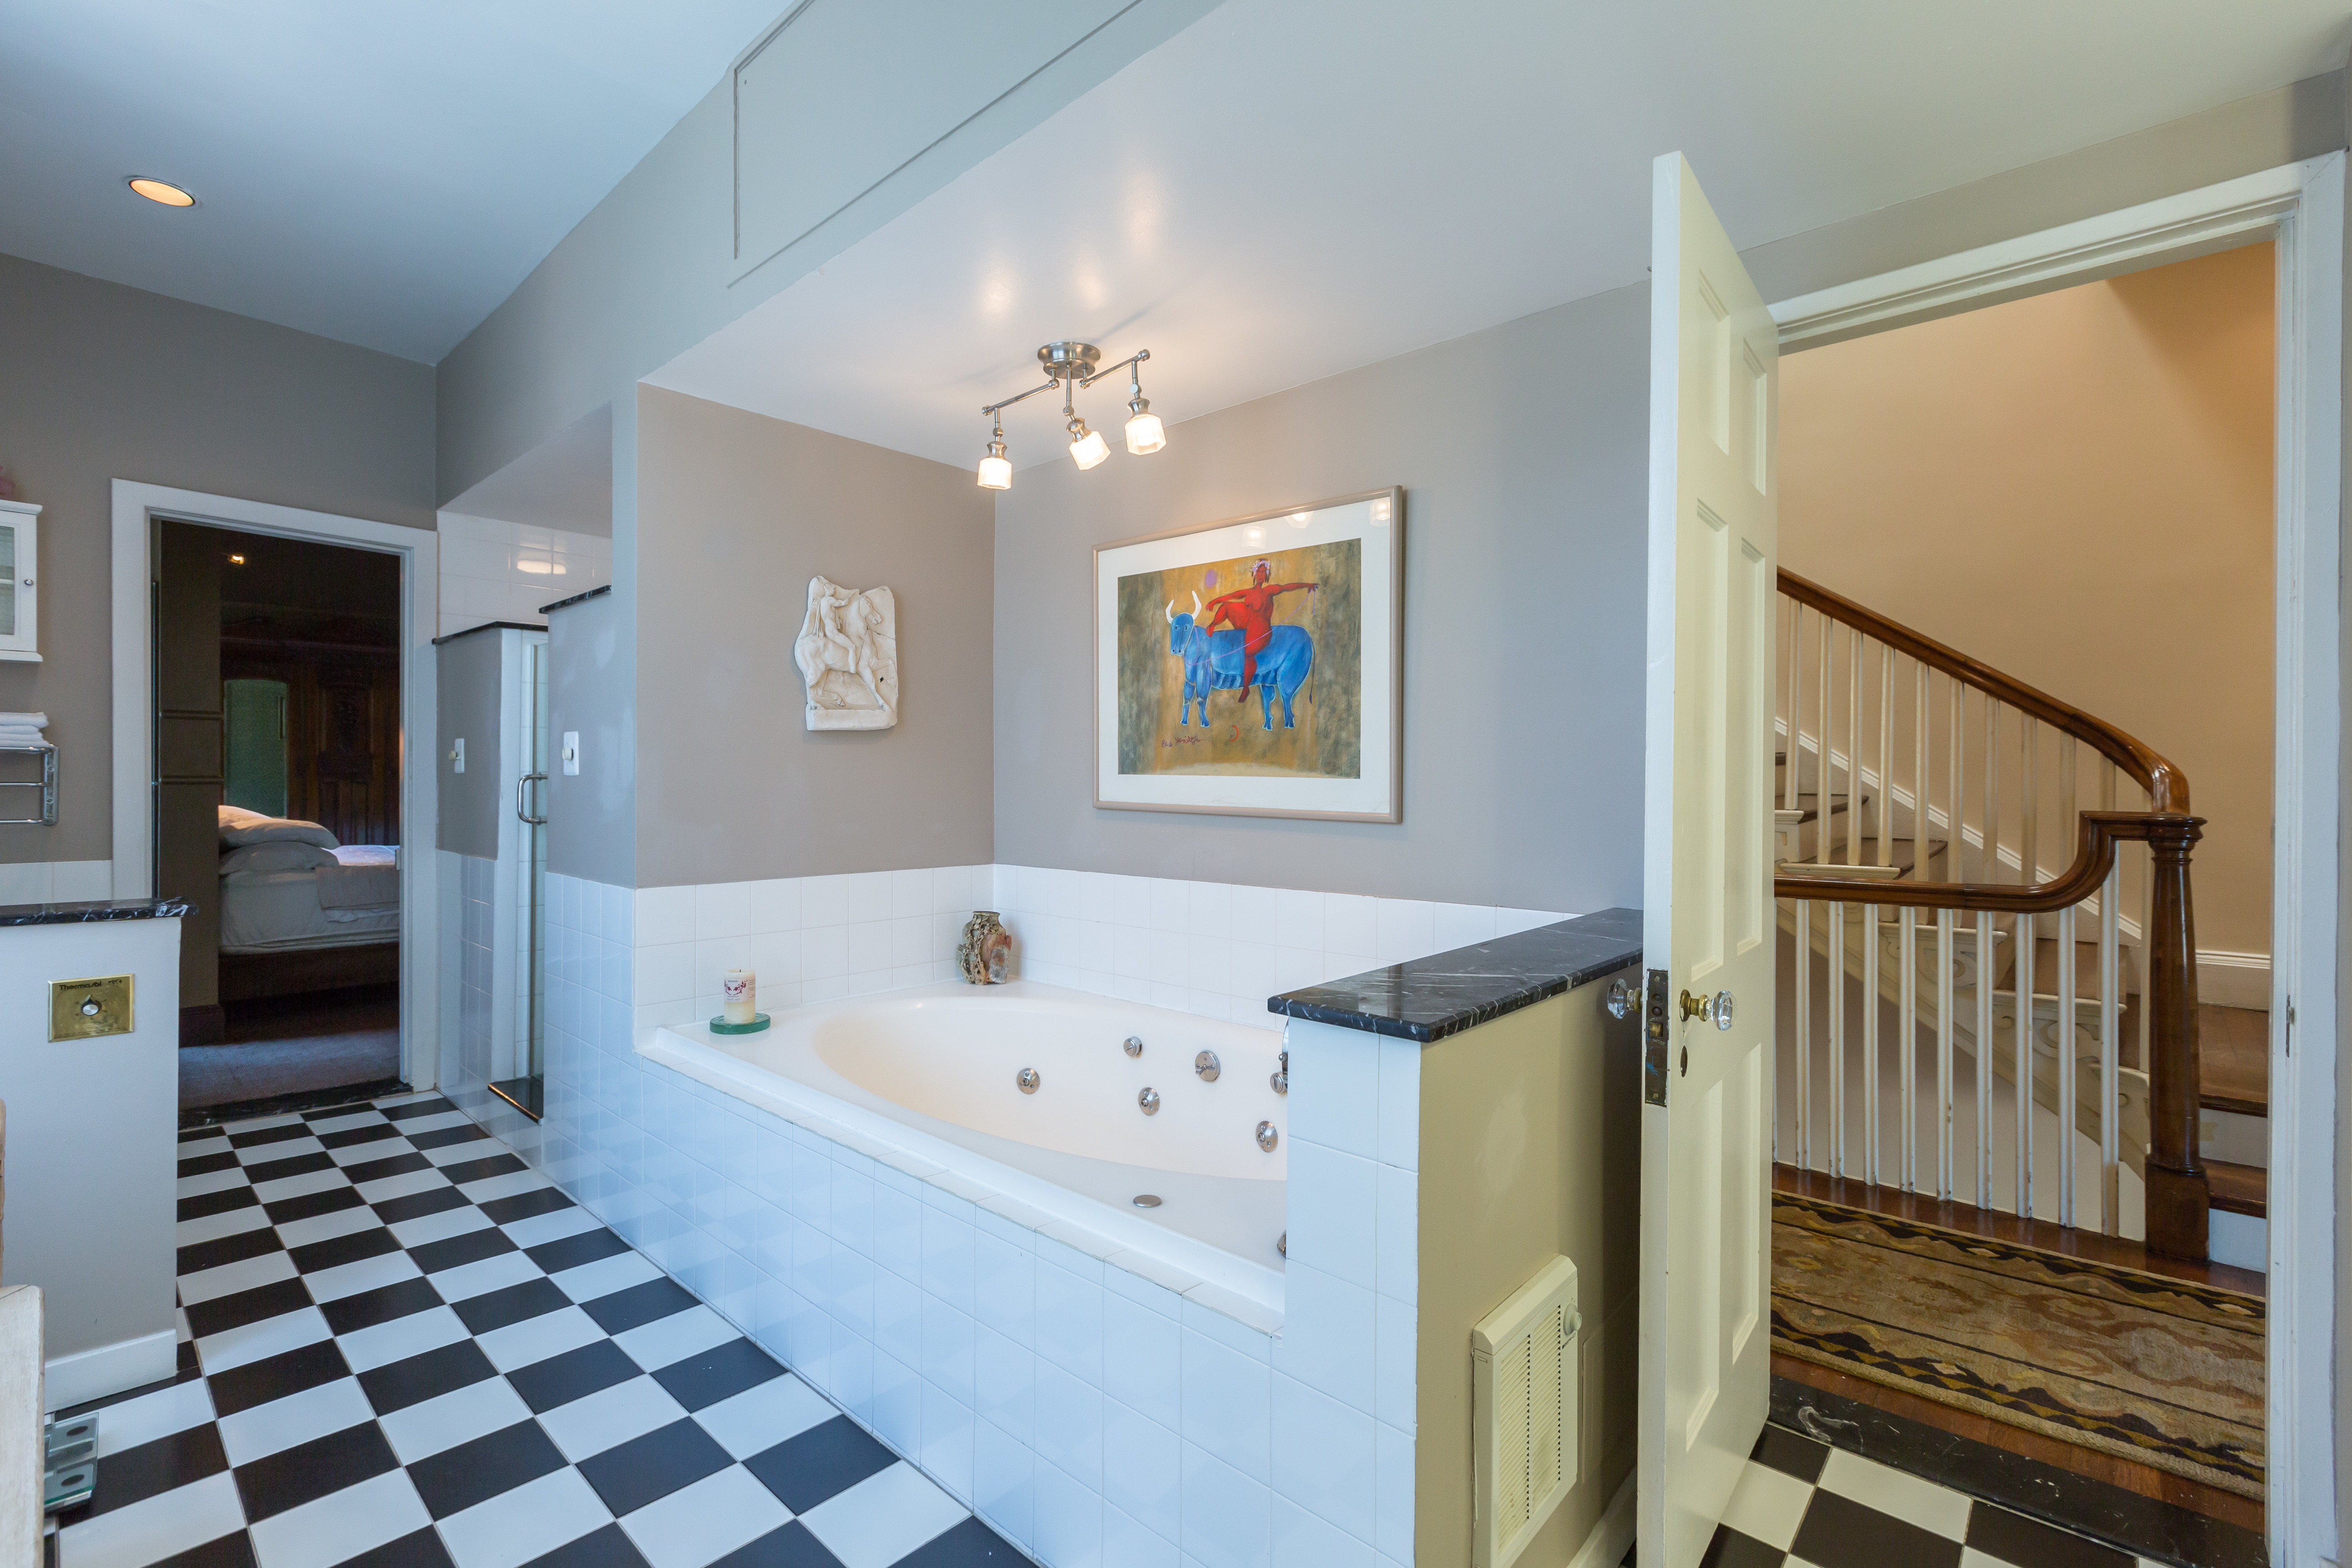 lavish nearly 125 year old townhome lists for 2 25m by meridian in the rear of the home there is a spacious courtyard with what looks like a garden a one car attached garage is included according to redfin this